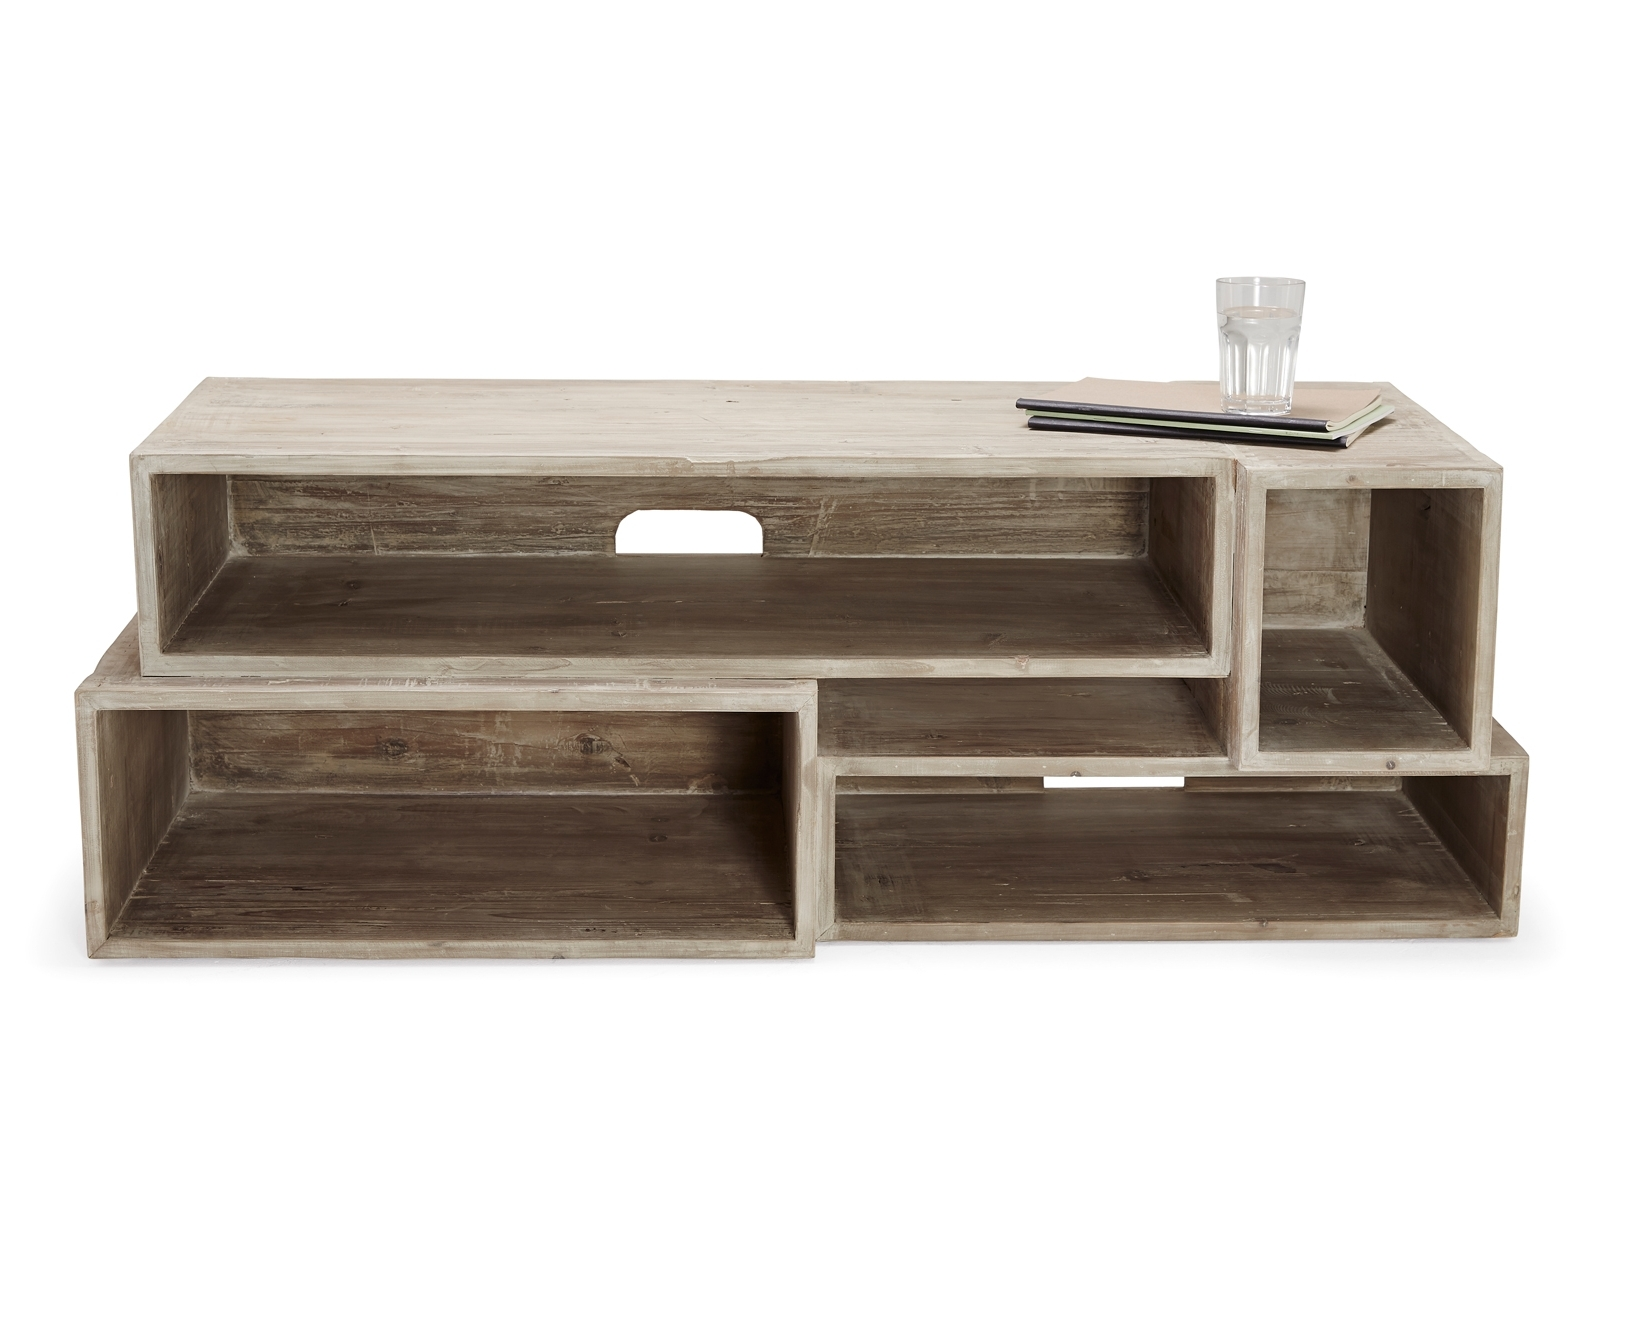 Crate Style Tv Stand (View 4 of 15)